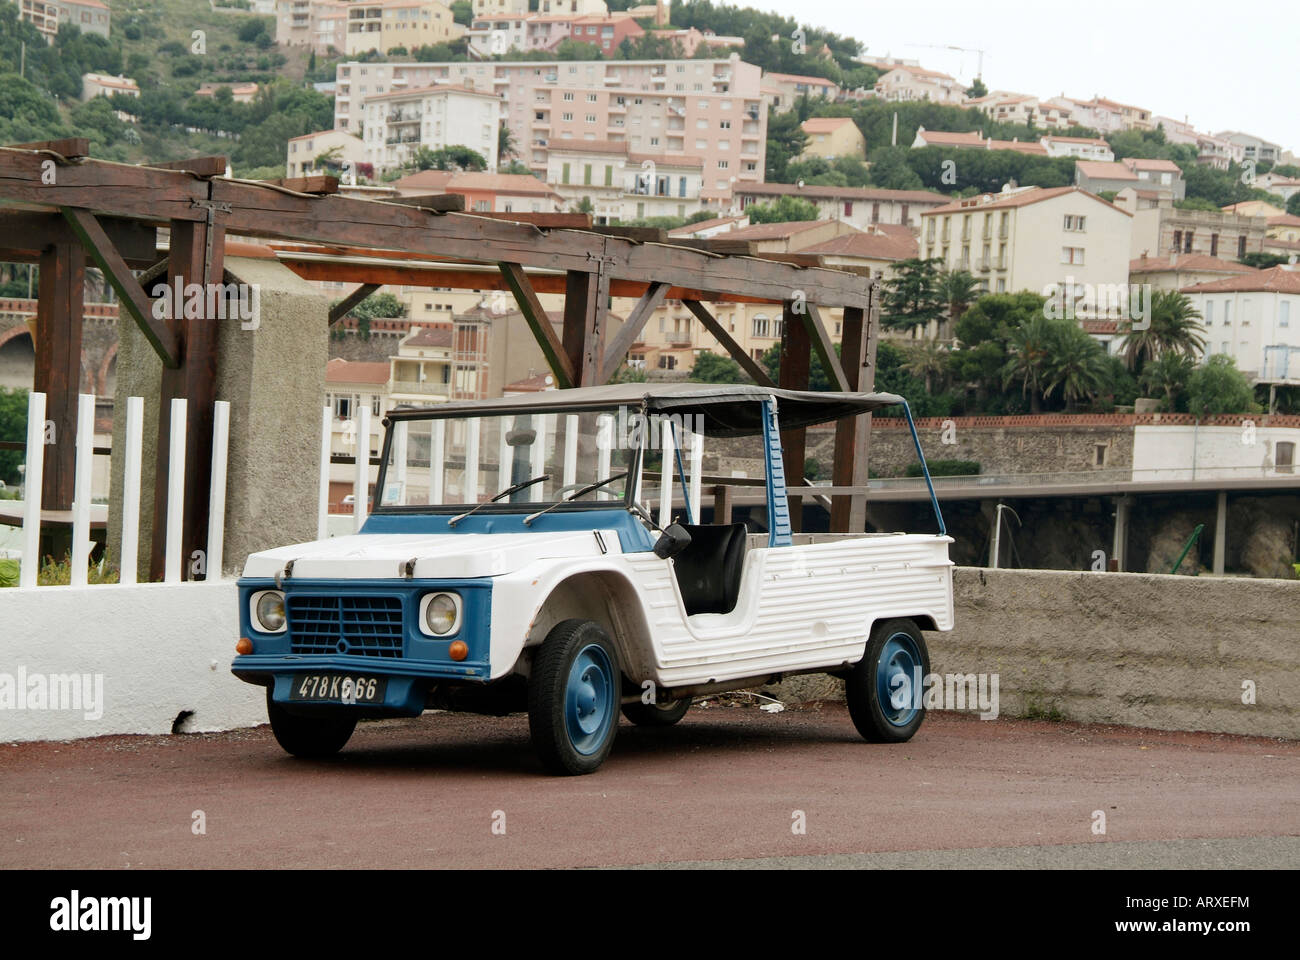 2cv jeep version variant citroen french france car - Stock Image